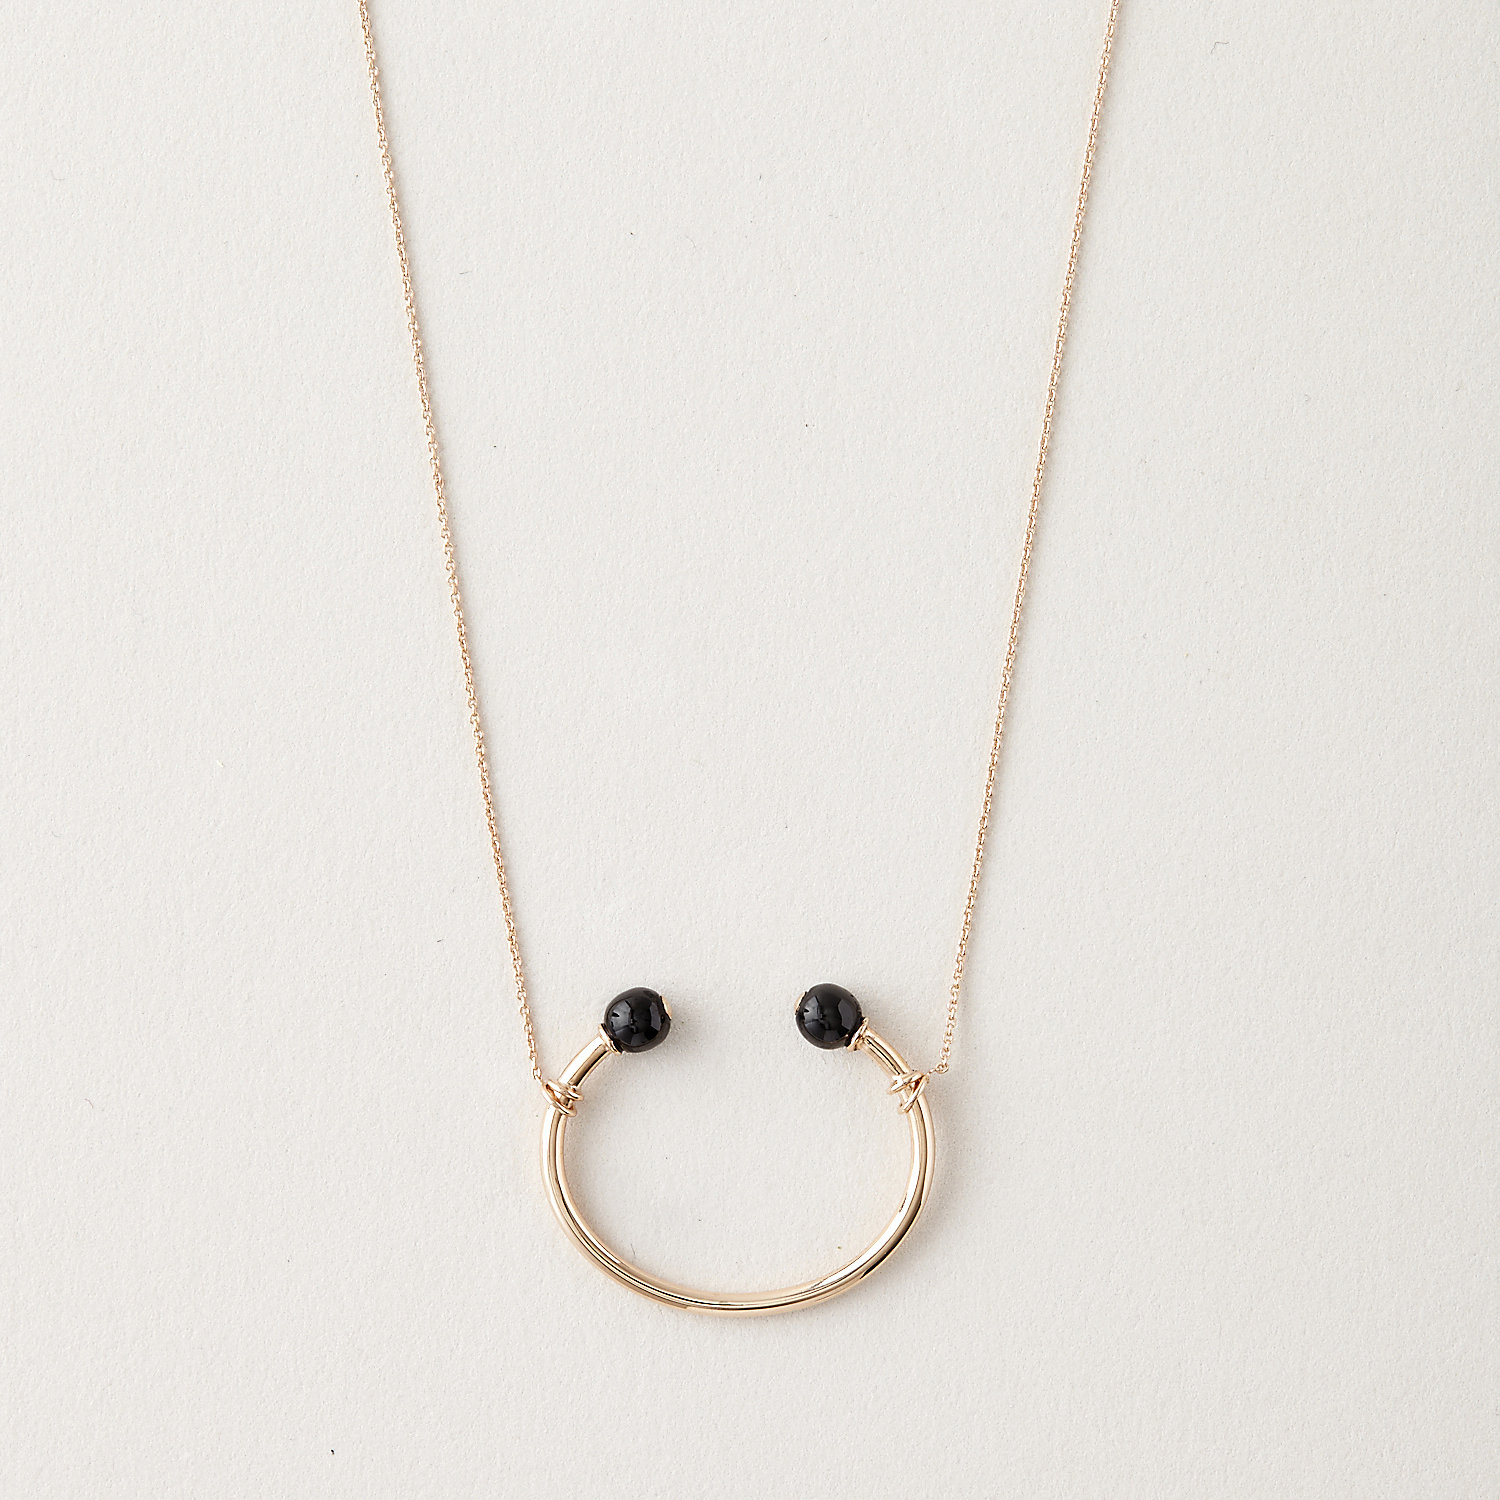 CERAMIC BUBBLES NECKLACE